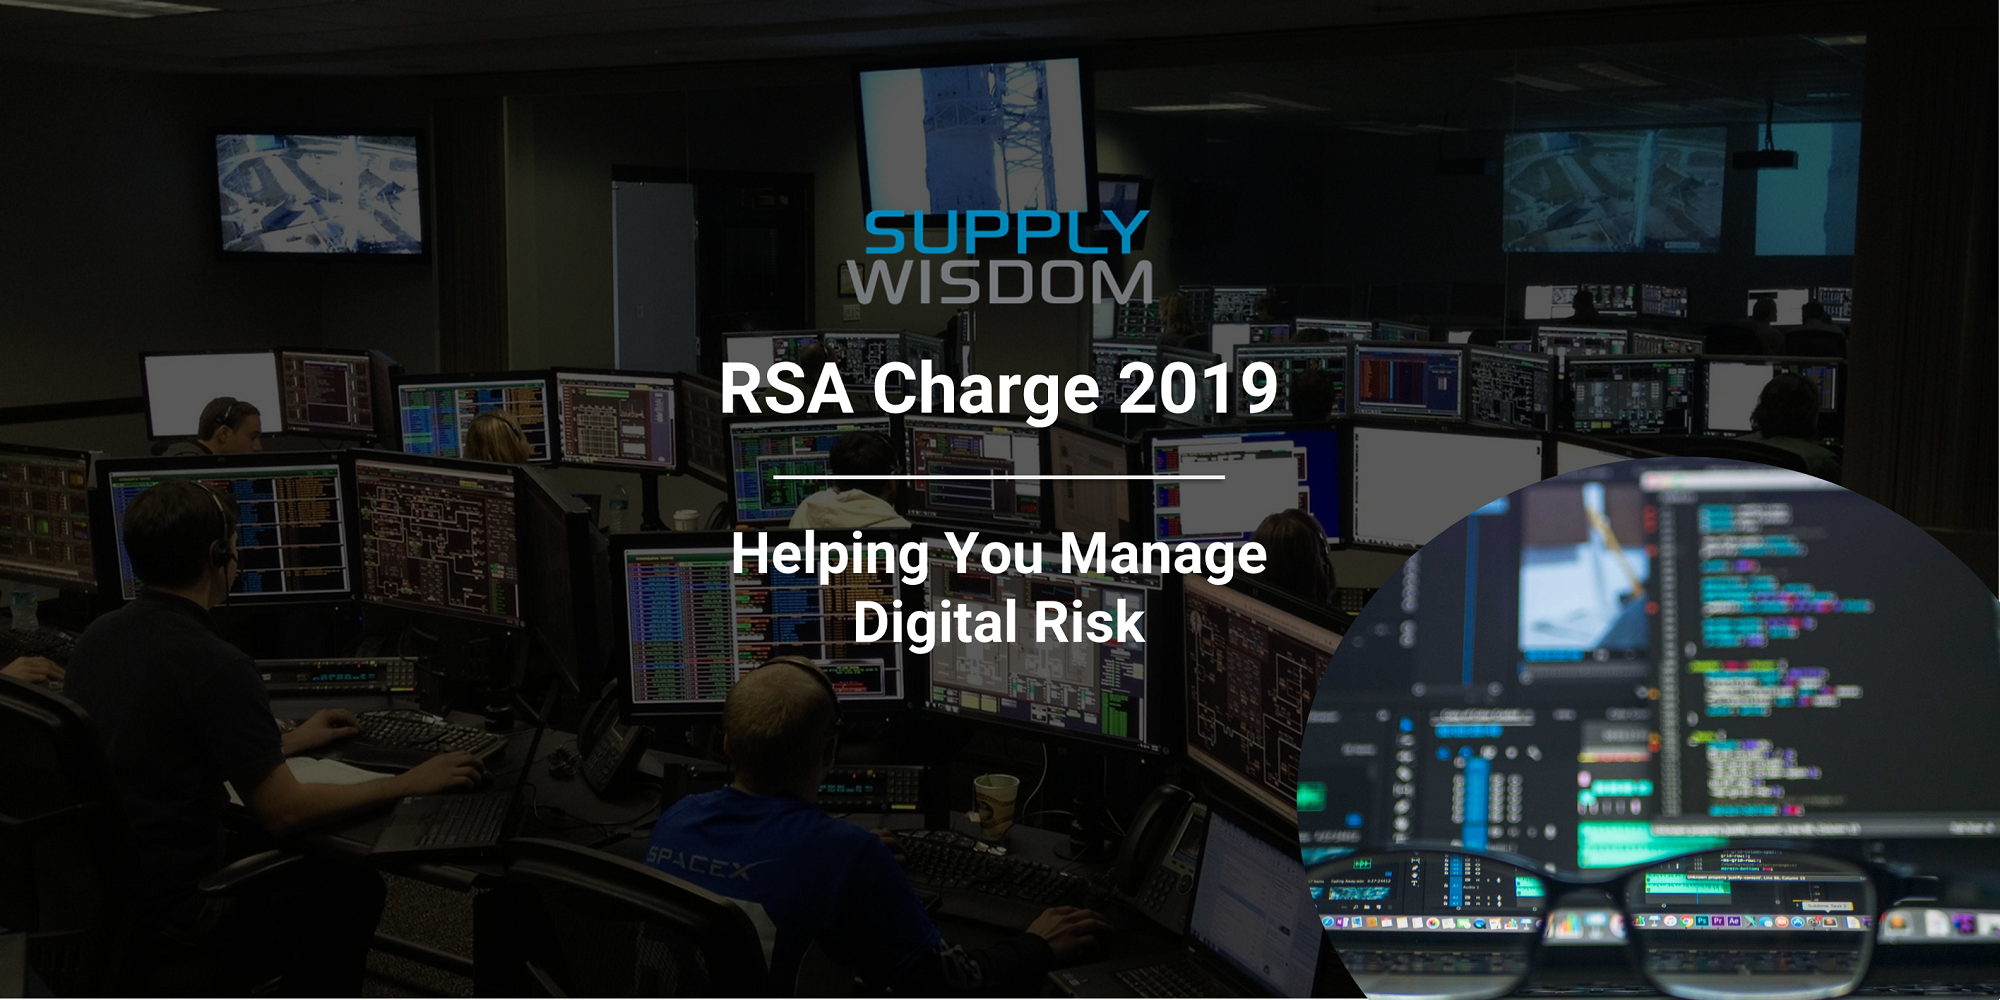 Meet Supply Wisdom at RSA Charge 2019, Orlando